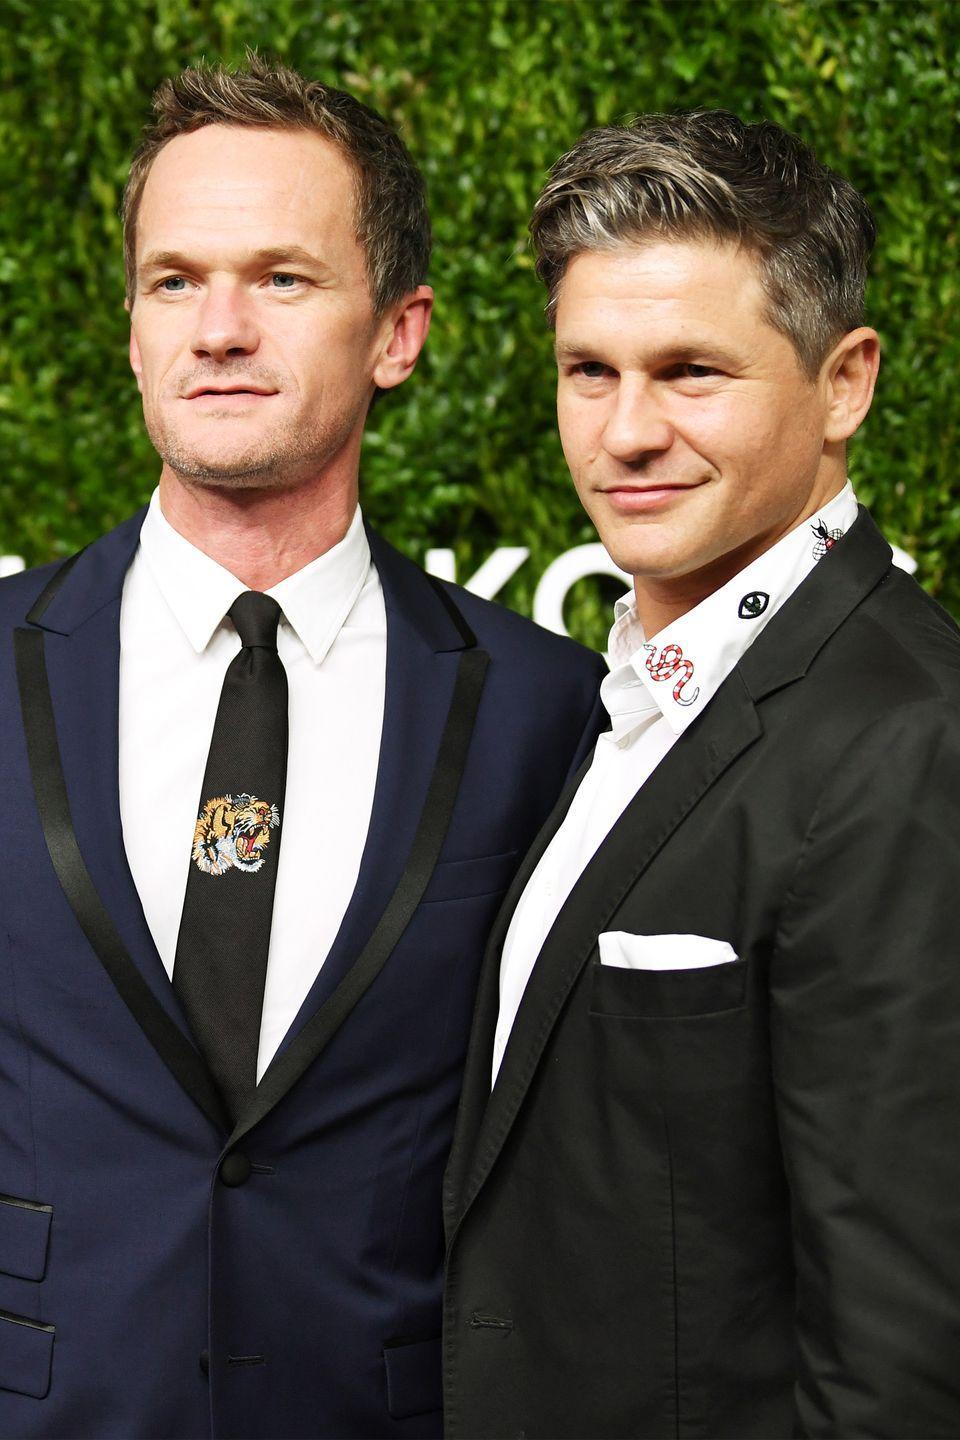 "<p>NPH and his husband David Burtka have been boo'd up for 14 years. On their fourth wedding anniversary, NPH gave us an intimate look at their stunning outdoor evening ceremony.</p><p> ""Four years ago today. How time flies - especially when you have someone special to share it with. After 14 years, two children, and thousands of adventures together, I've never been happier. Happy anniversary, David. Thank you for saying 'I do',"" he beautifully captioned his <a href=""https://www.instagram.com/p/BnZQILmB0oo/"" rel=""nofollow noopener"" target=""_blank"" data-ylk=""slk:Instagram"" class=""link rapid-noclick-resp"">Instagram</a> post in honor of their anniversary. </p>"